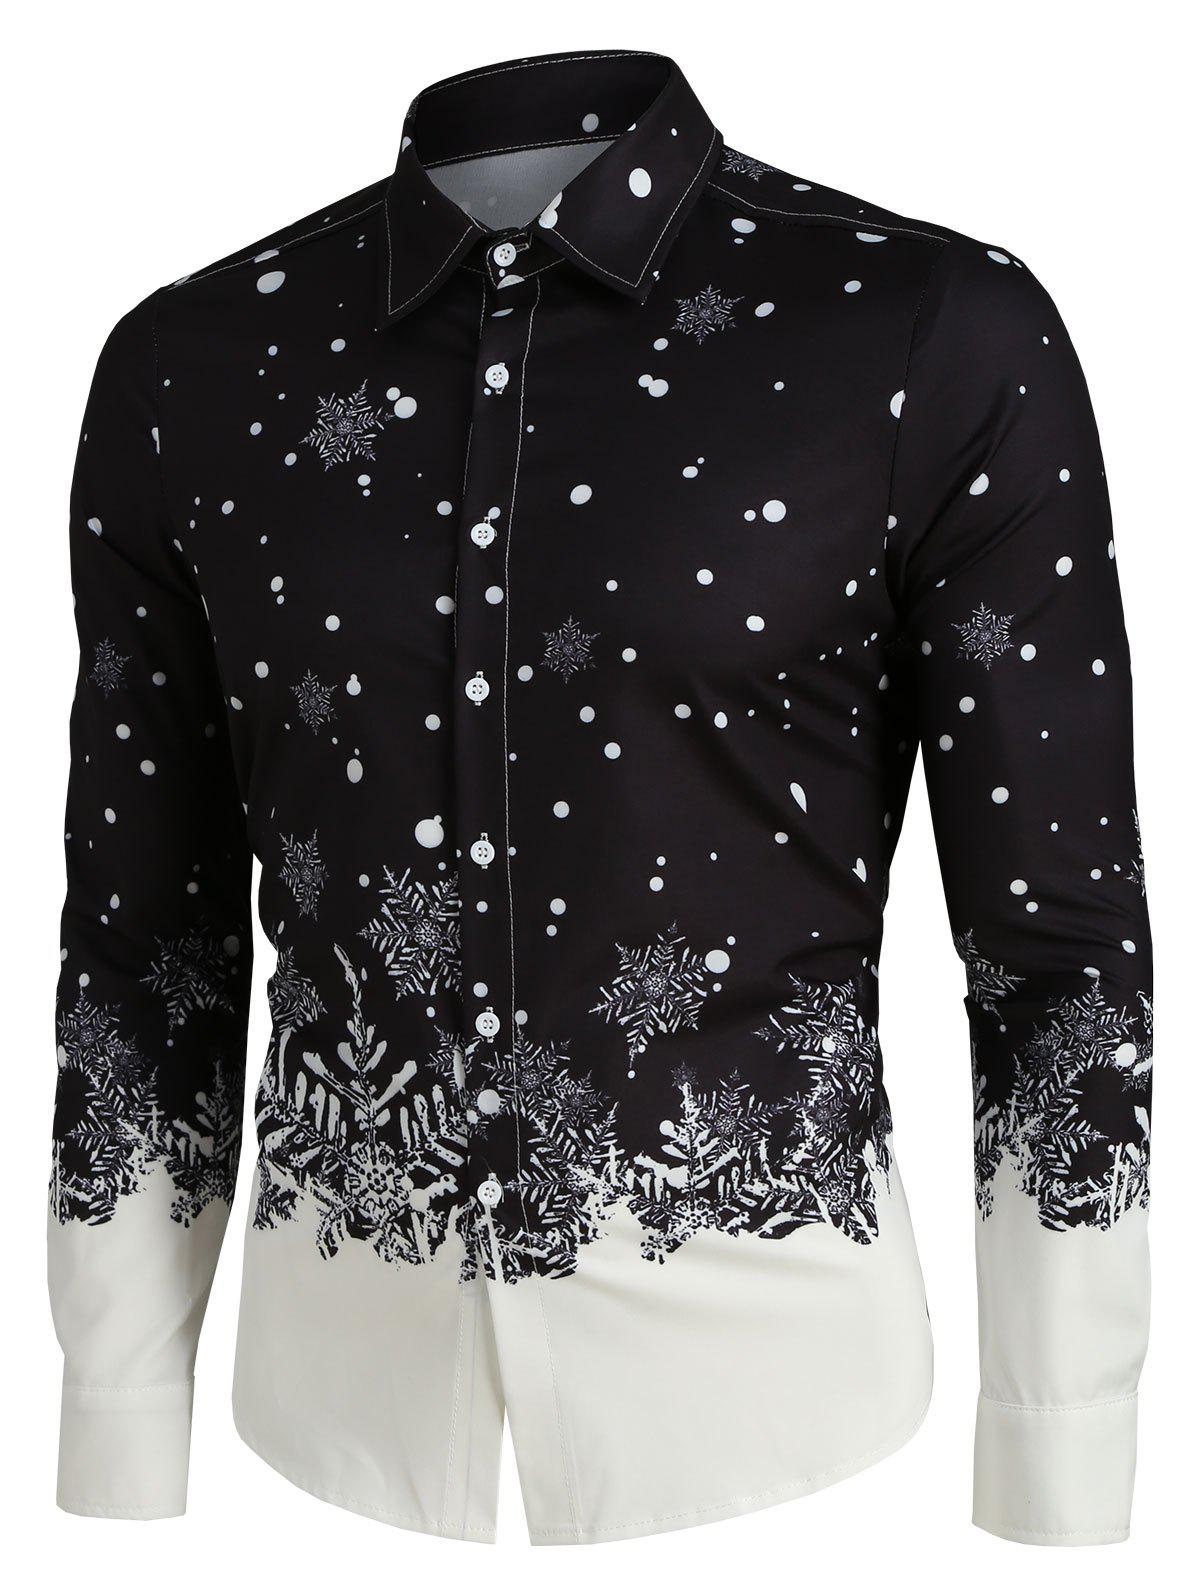 New Christmas Snowflake Print Long Sleeve Button Up Shirt